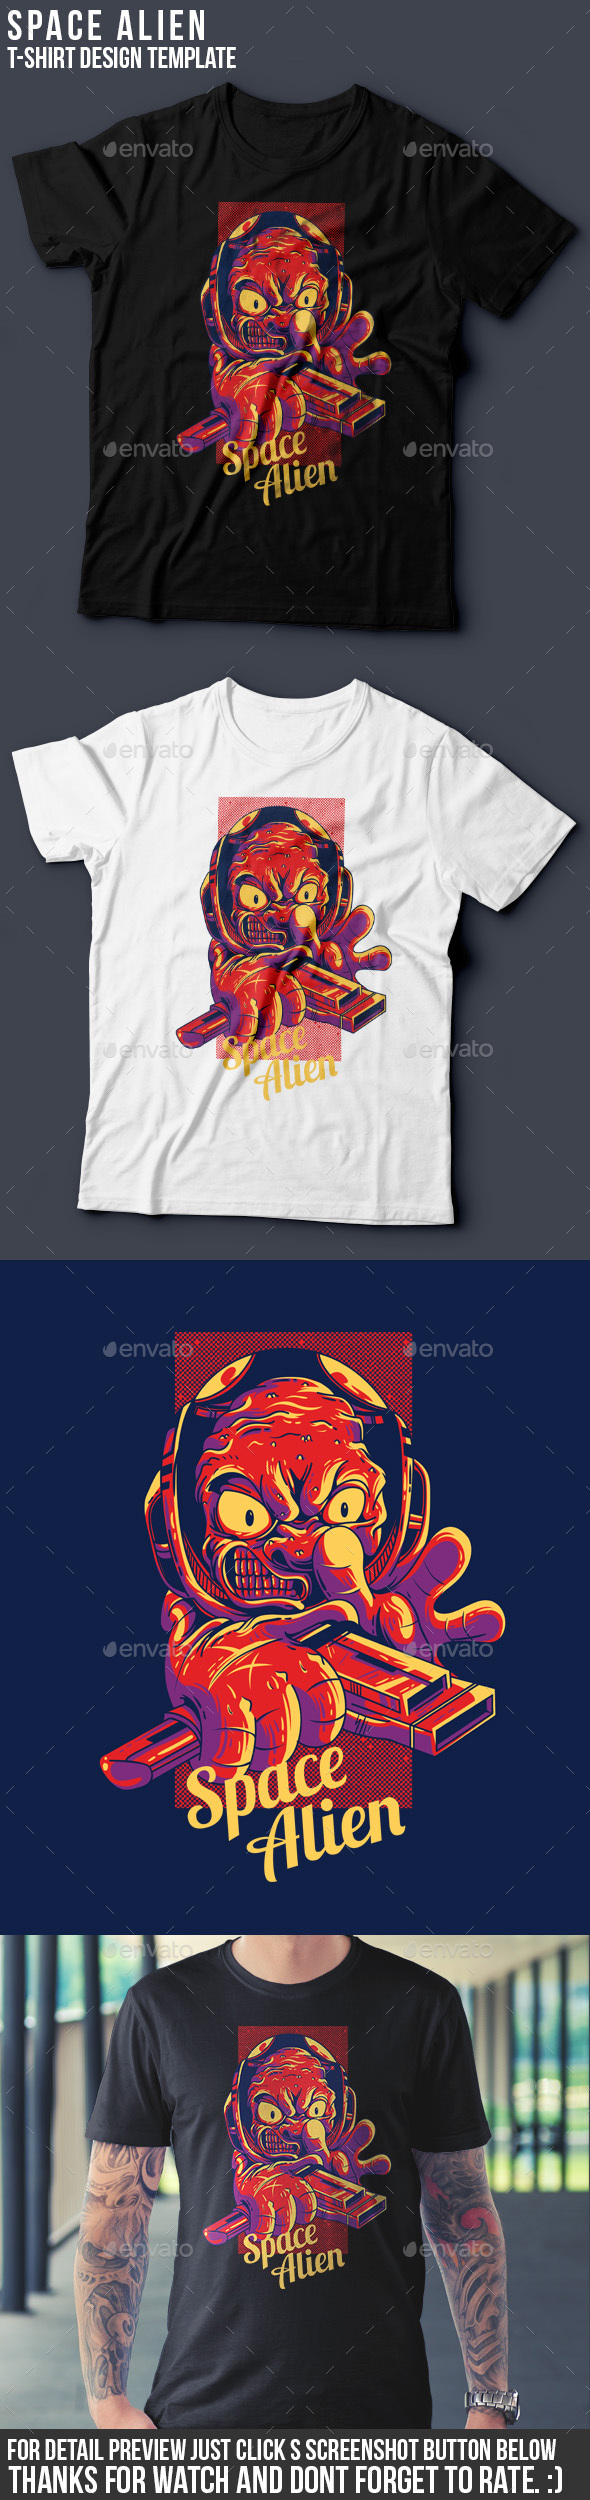 Alien Space T-Shirt Design - Funny Designs